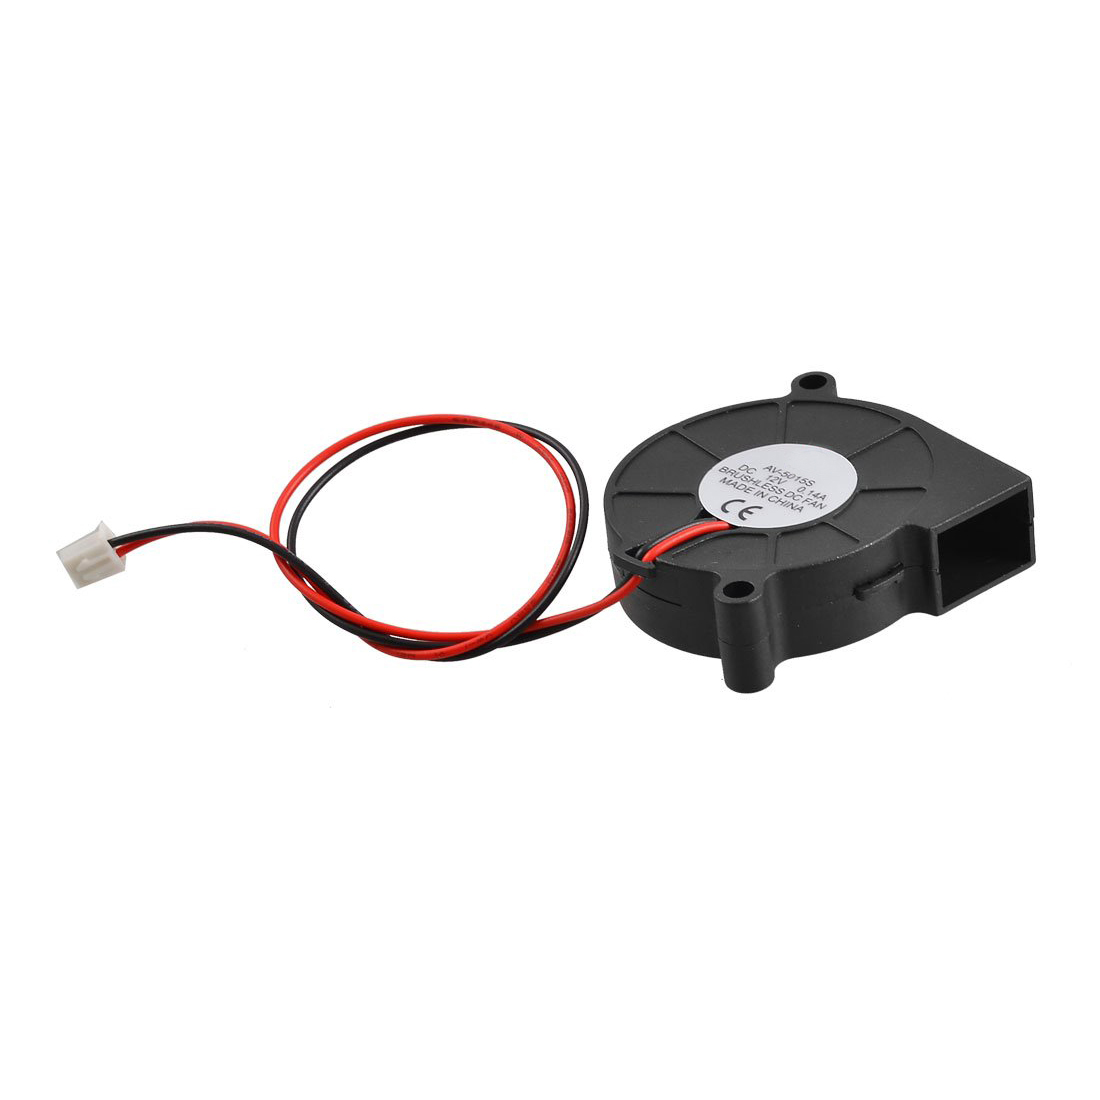 Black Brushless DC Cooling Blower Fan 5015S 12V 0.14A 50mm x 15mm 5015 12v cooling turbo fan brushless 3d printer parts 2pin for makerbot reprap prusa i3 dc cooler blower 50x50x15mm part plastic